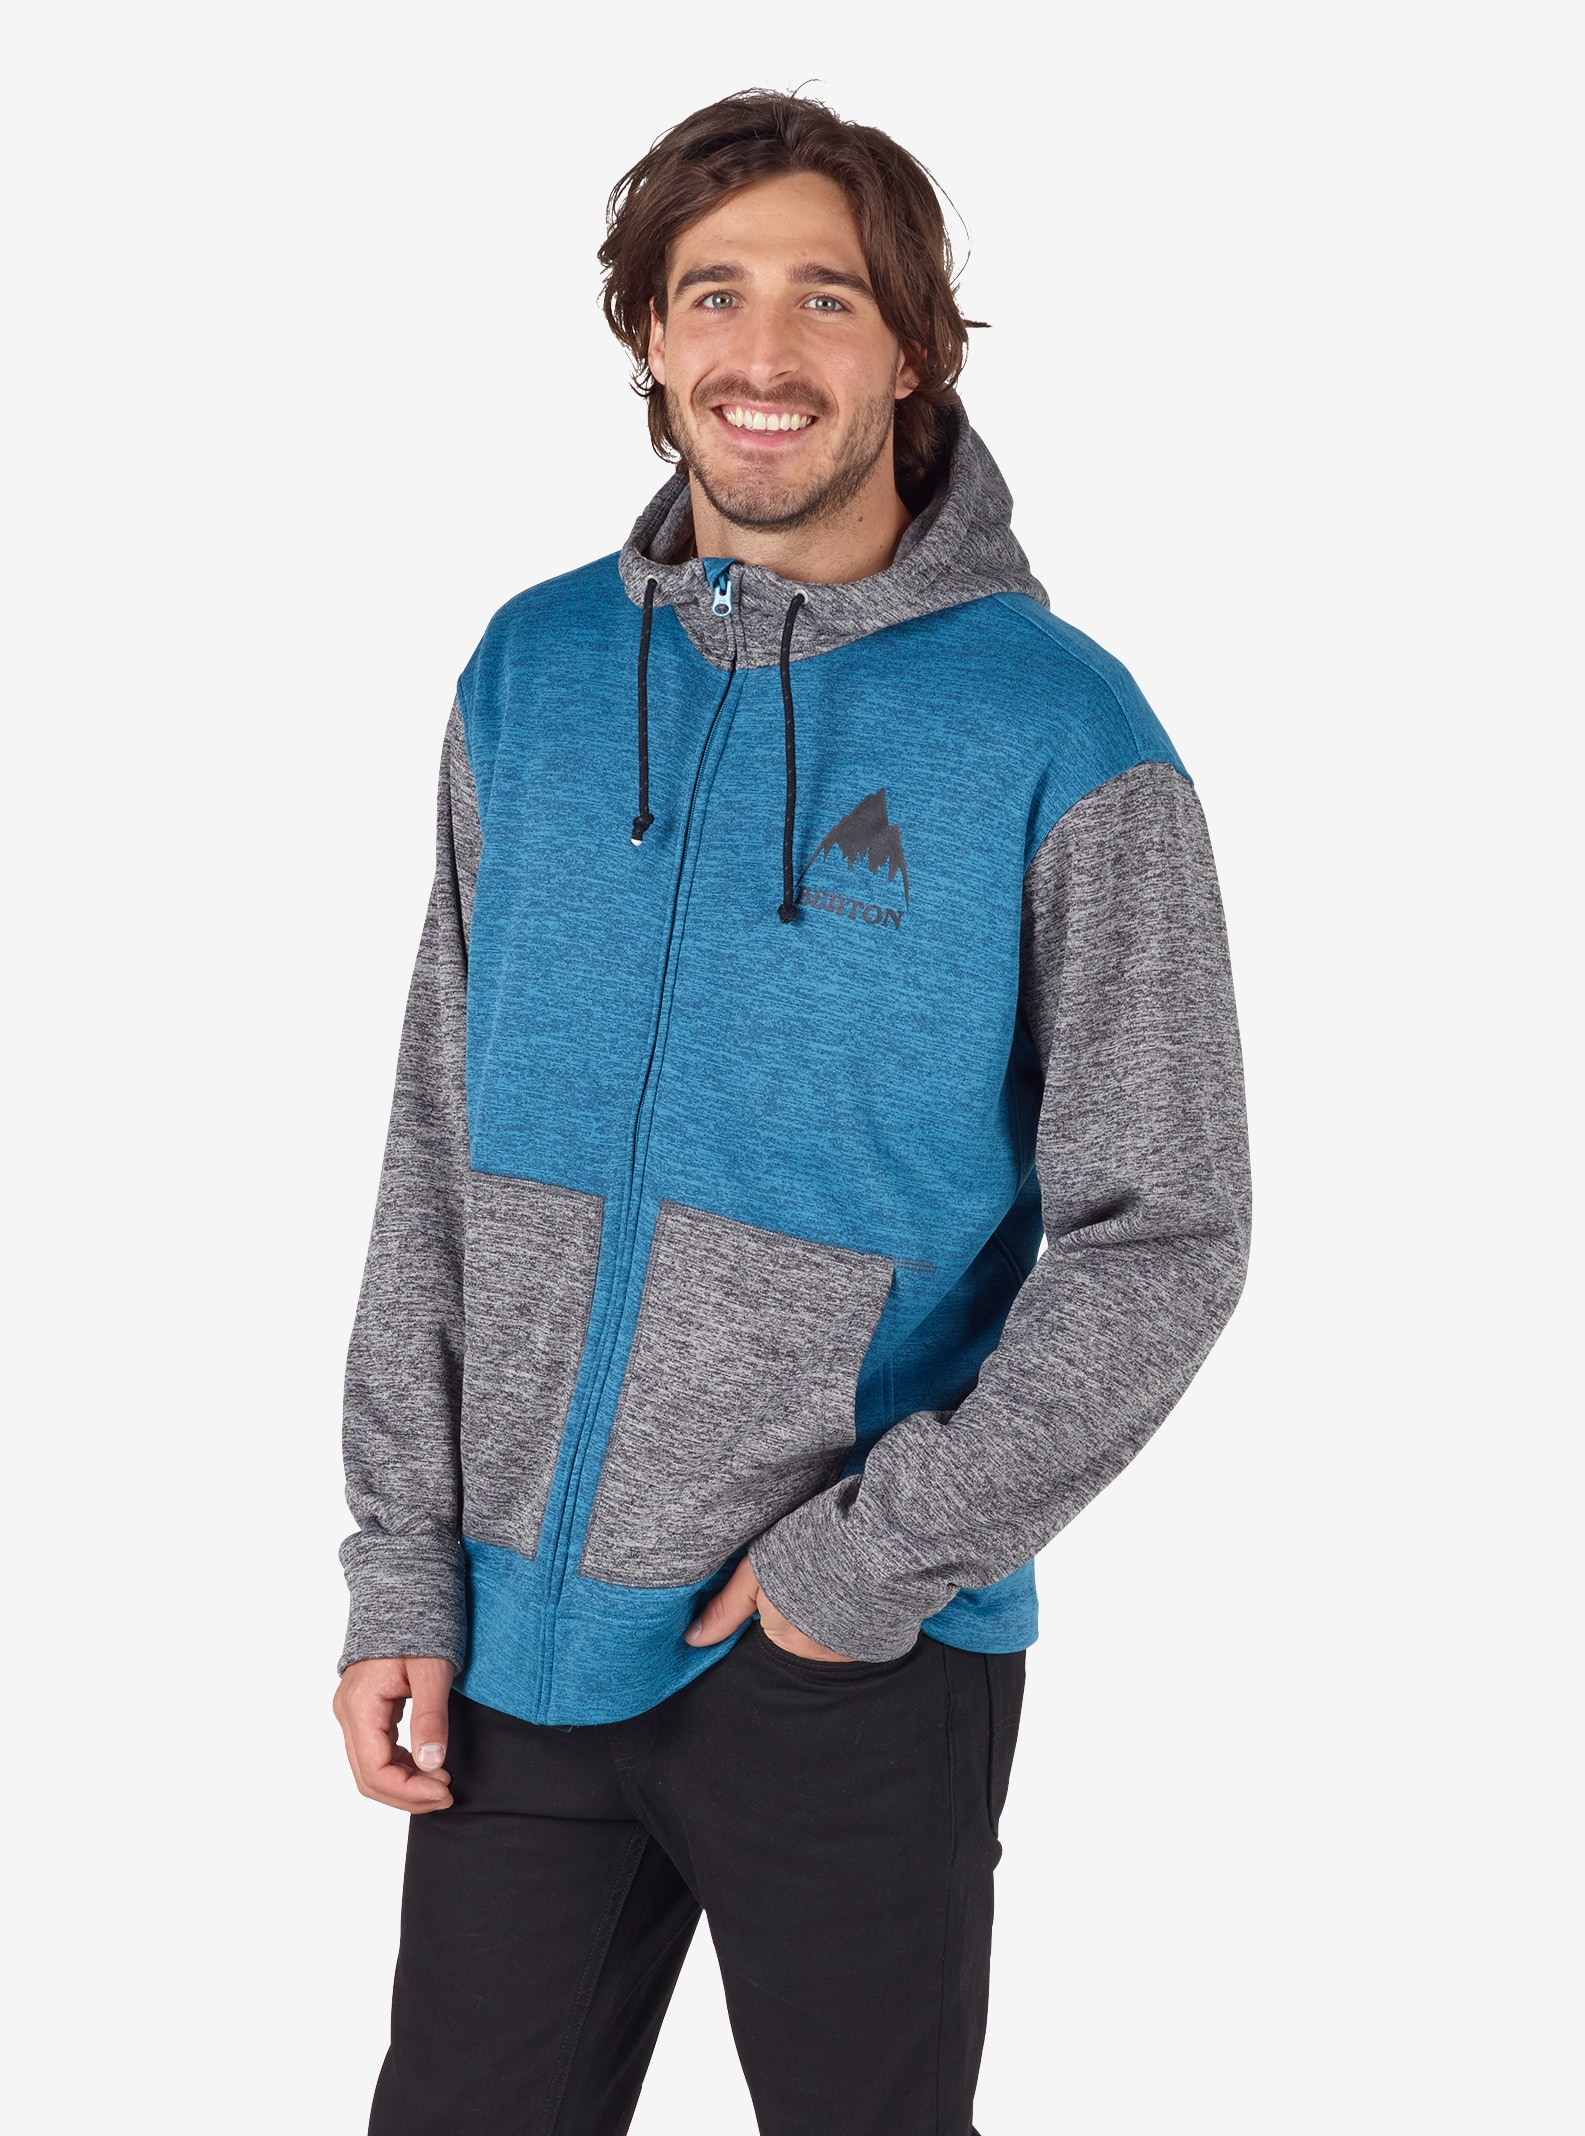 Burton Oak Hoodie mit durchgehendem Reißverschluss für Herren angezeigt in Mountaineer Heather / True Black Heather